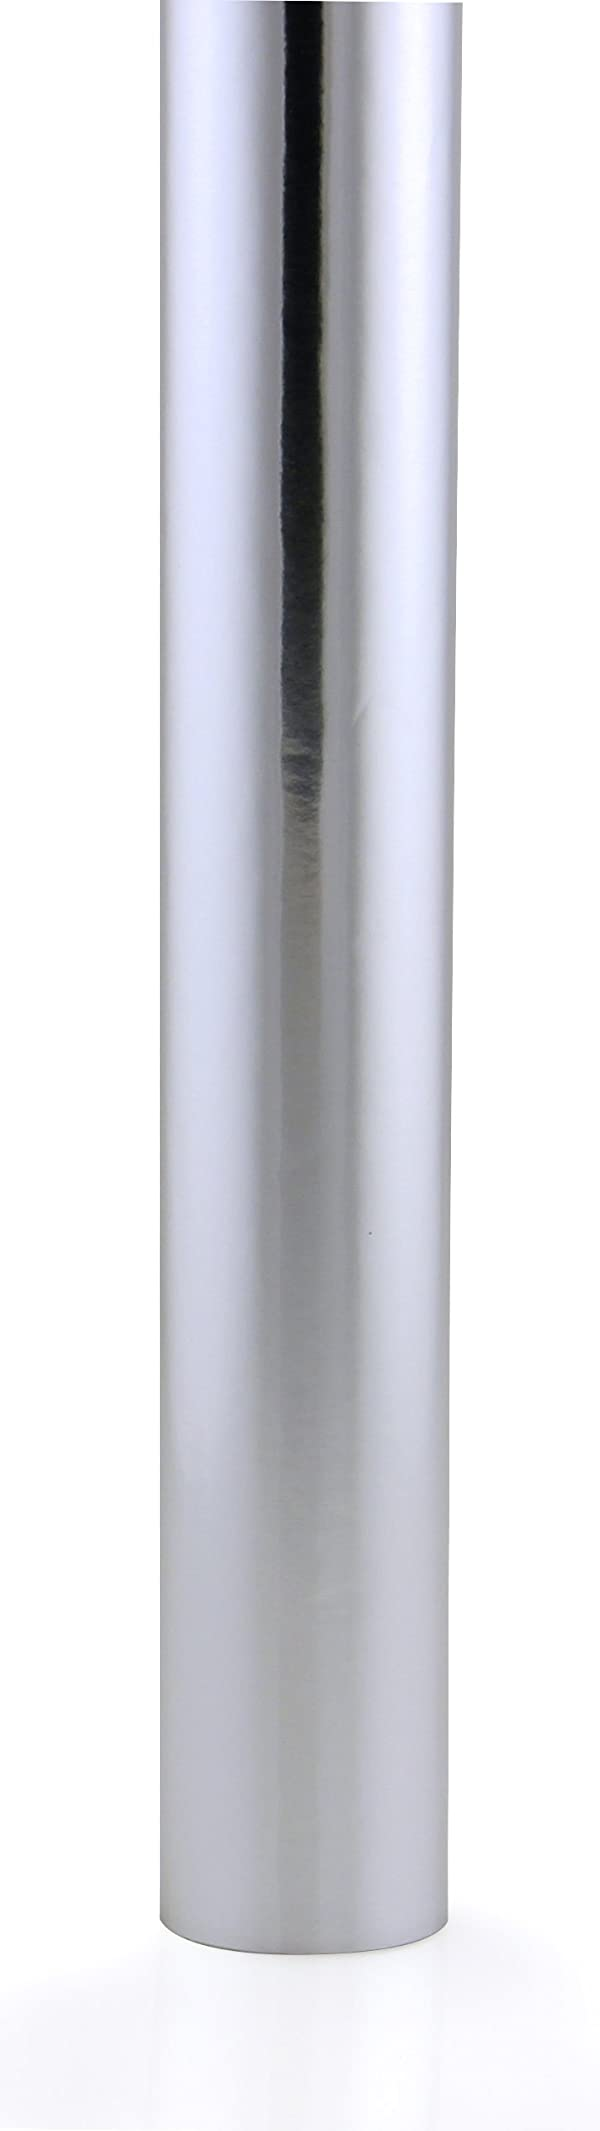 Hygloss Products, Inc ft Hygloss Products Metallic Foil Paper Gift Wrap Roll, 26-Inch x 25-Feet, Silver, 26 Inch (Color: Silver, Tamaño: 25 Ft. x 26 Inch)